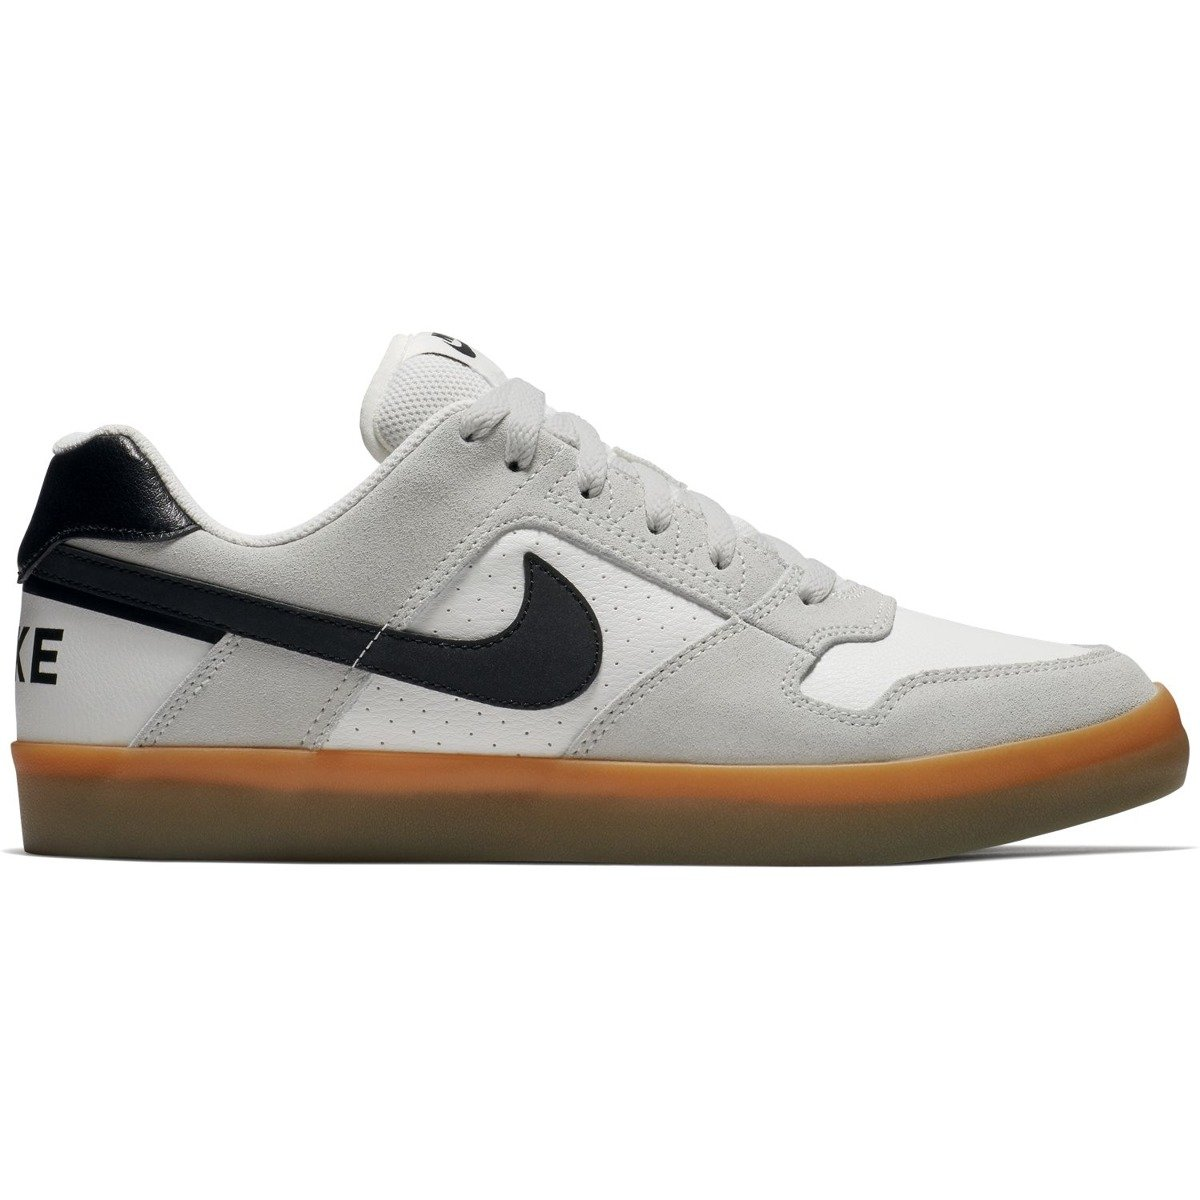 c030b191643d nike sb delta force vulc summit white black-gum light brown white ...